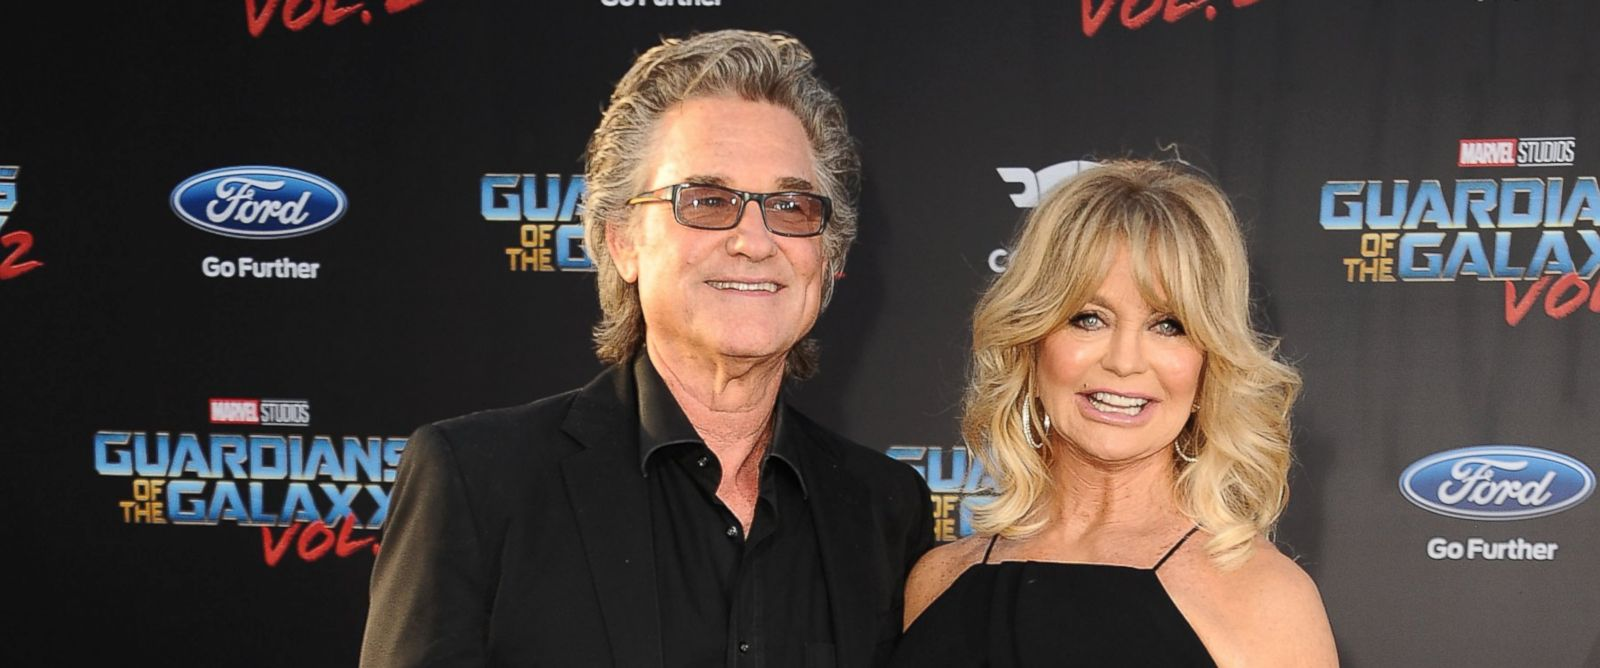 """PHOTO: Kurt Russell and Goldie Hawn attend the premiere of """"Guardians of the Galaxy Vol. 2"""" at Dolby Theatre, April 19, 2017, in Hollywood."""